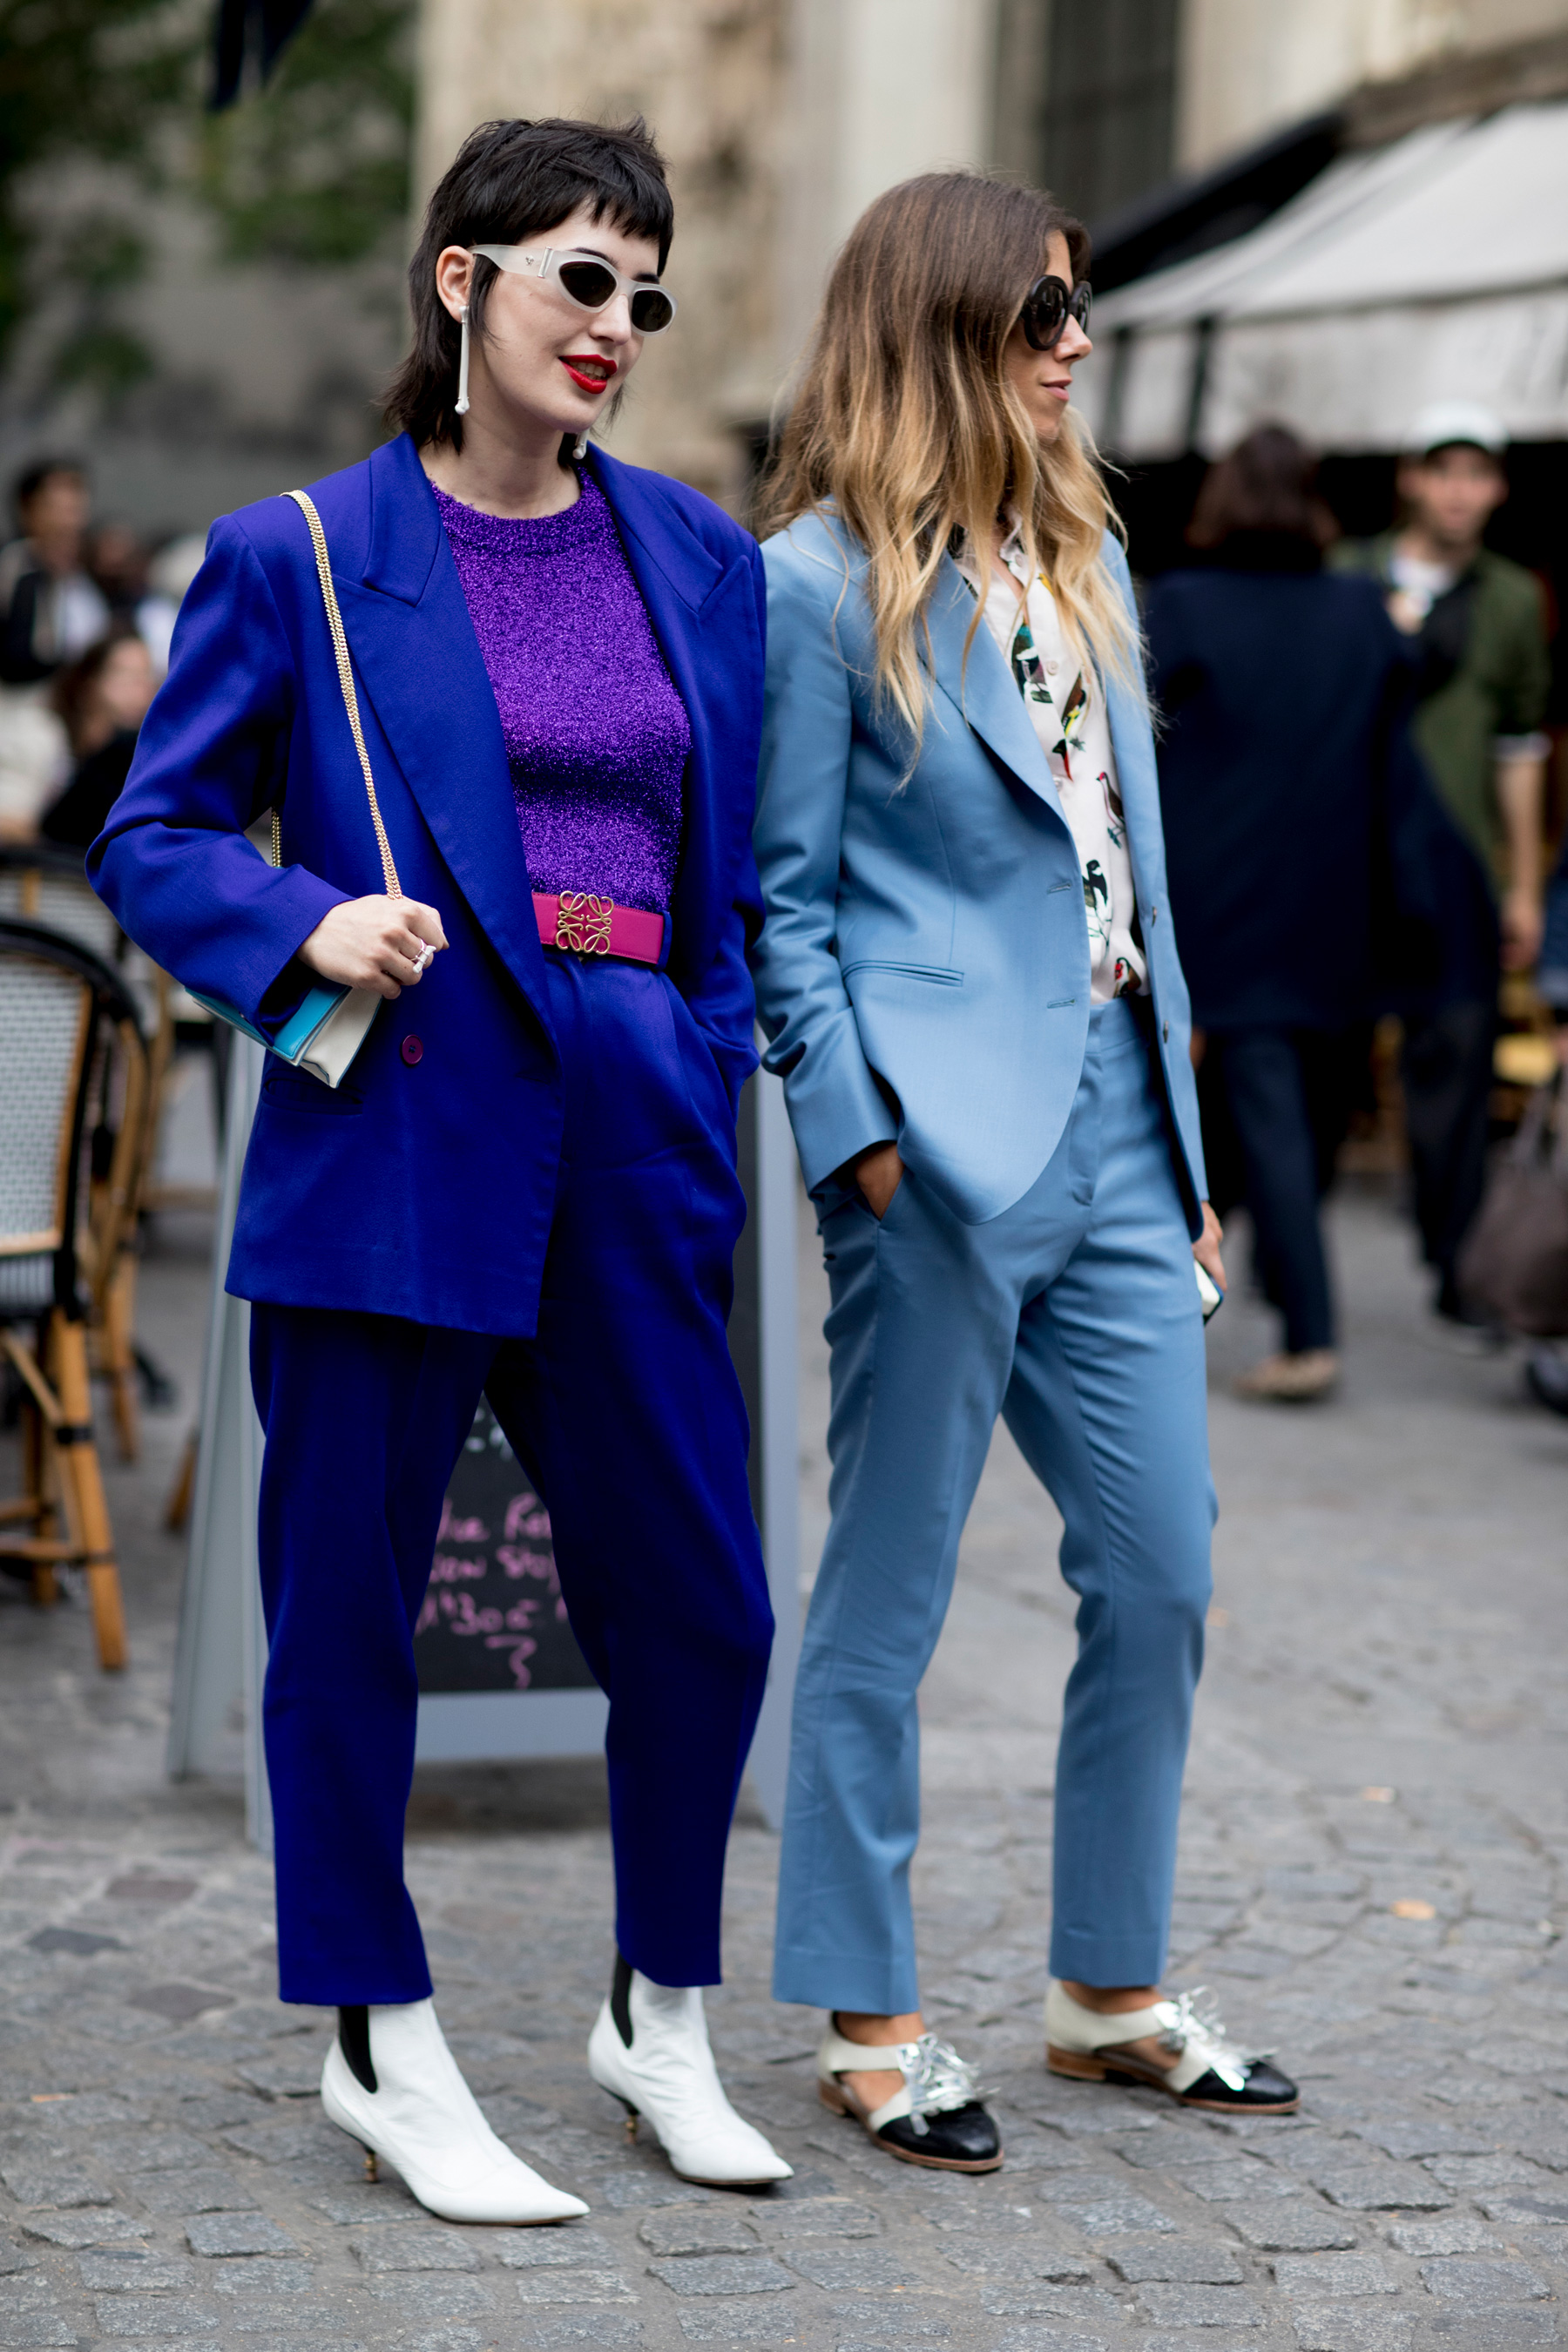 Paris Fashion Week Street Style Spring 2018 Day 1